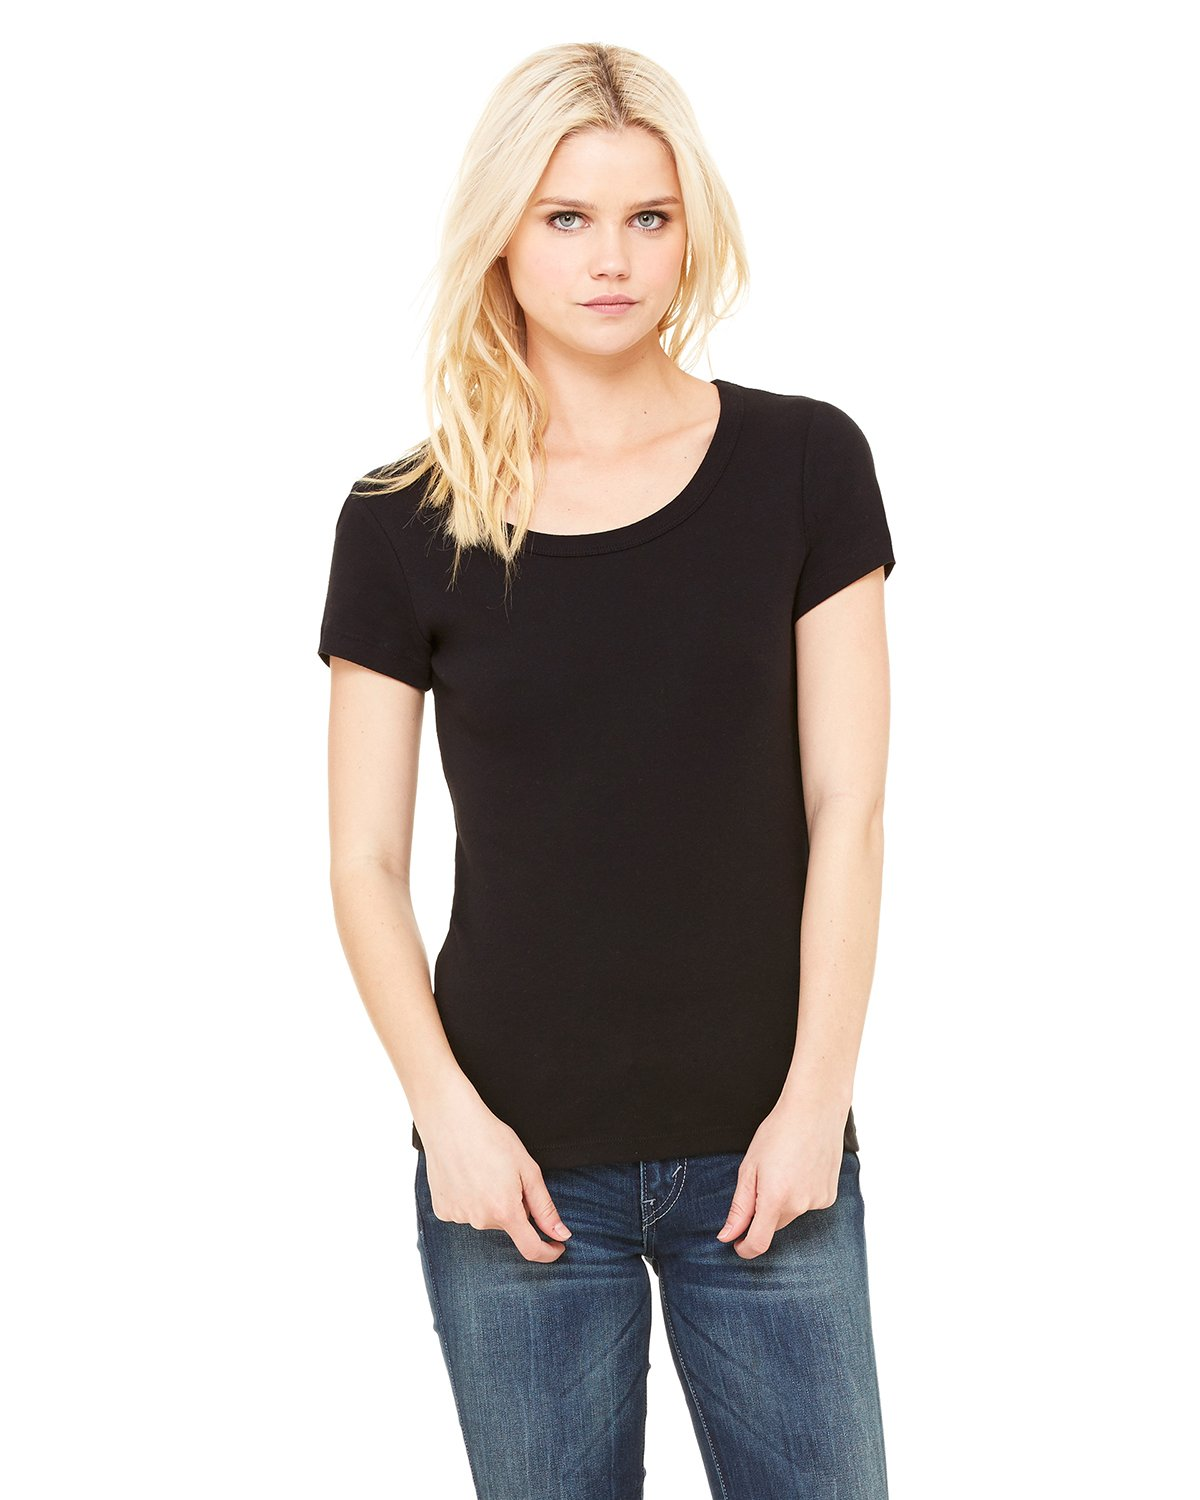 Bella + Canvas - B1003 - Ladies' Baby Rib Short-Sleeve Scoop Neck T-Shirt